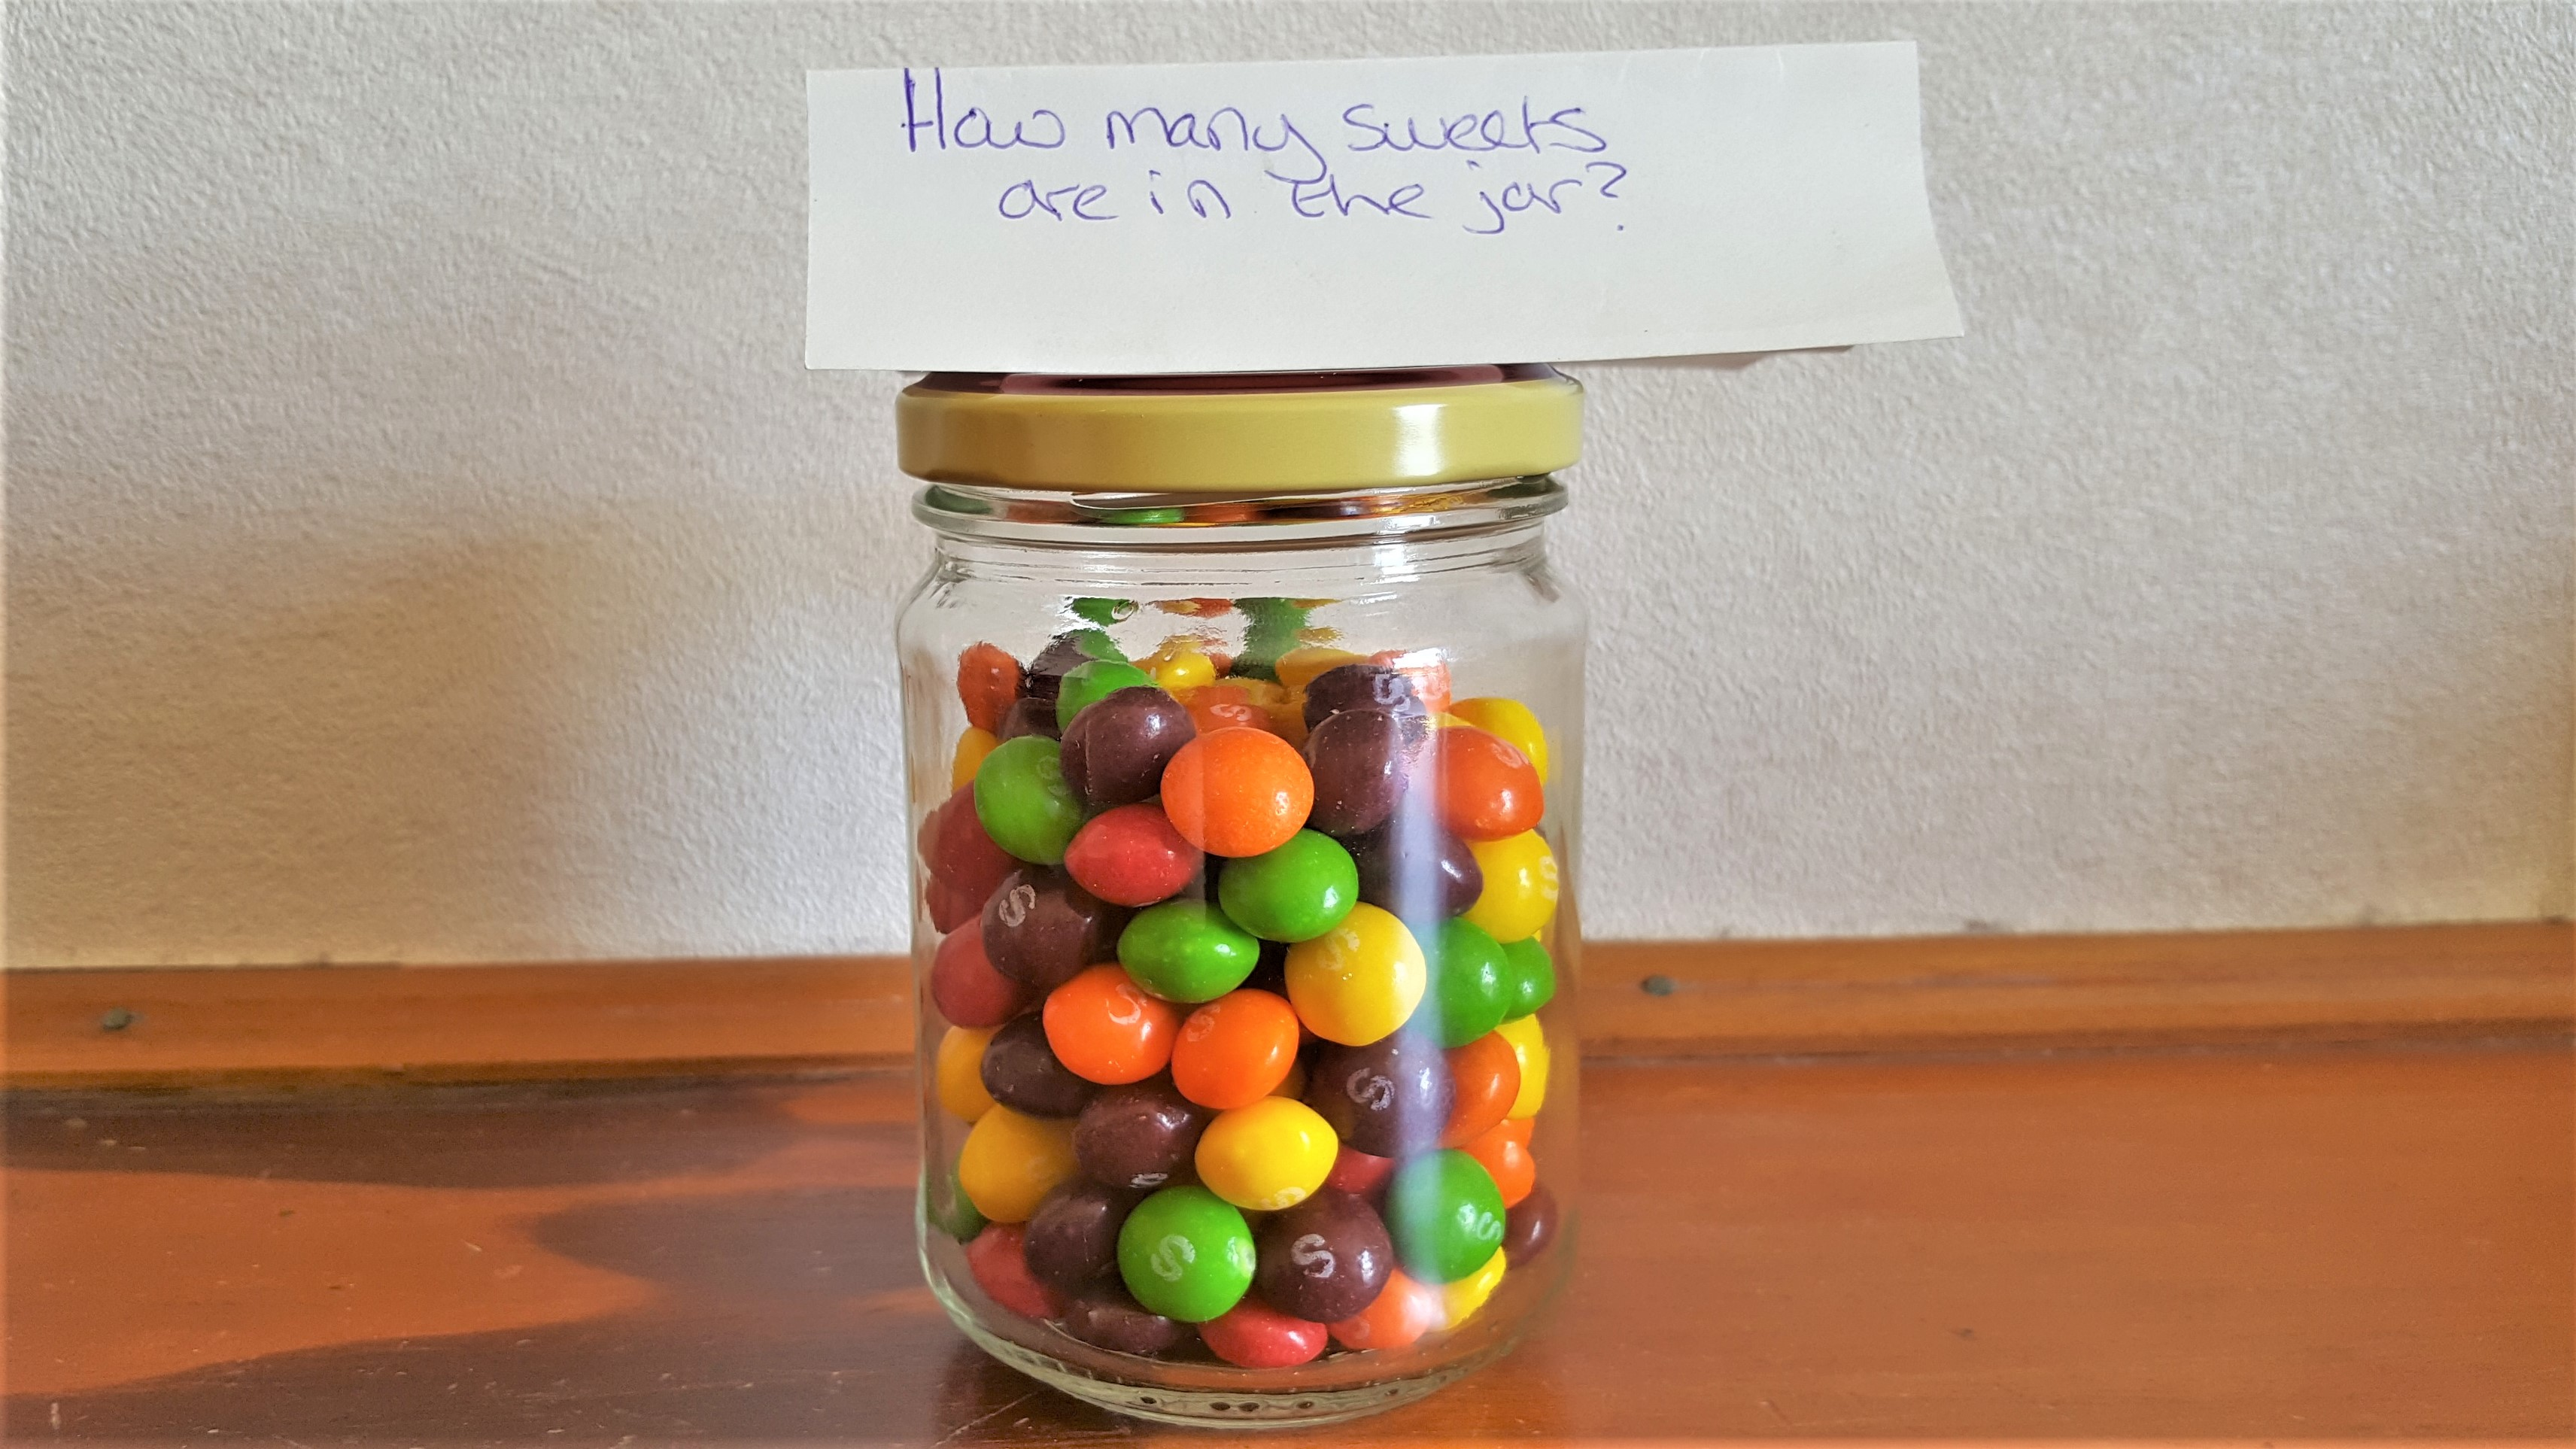 estimate the number of sweets in the jar